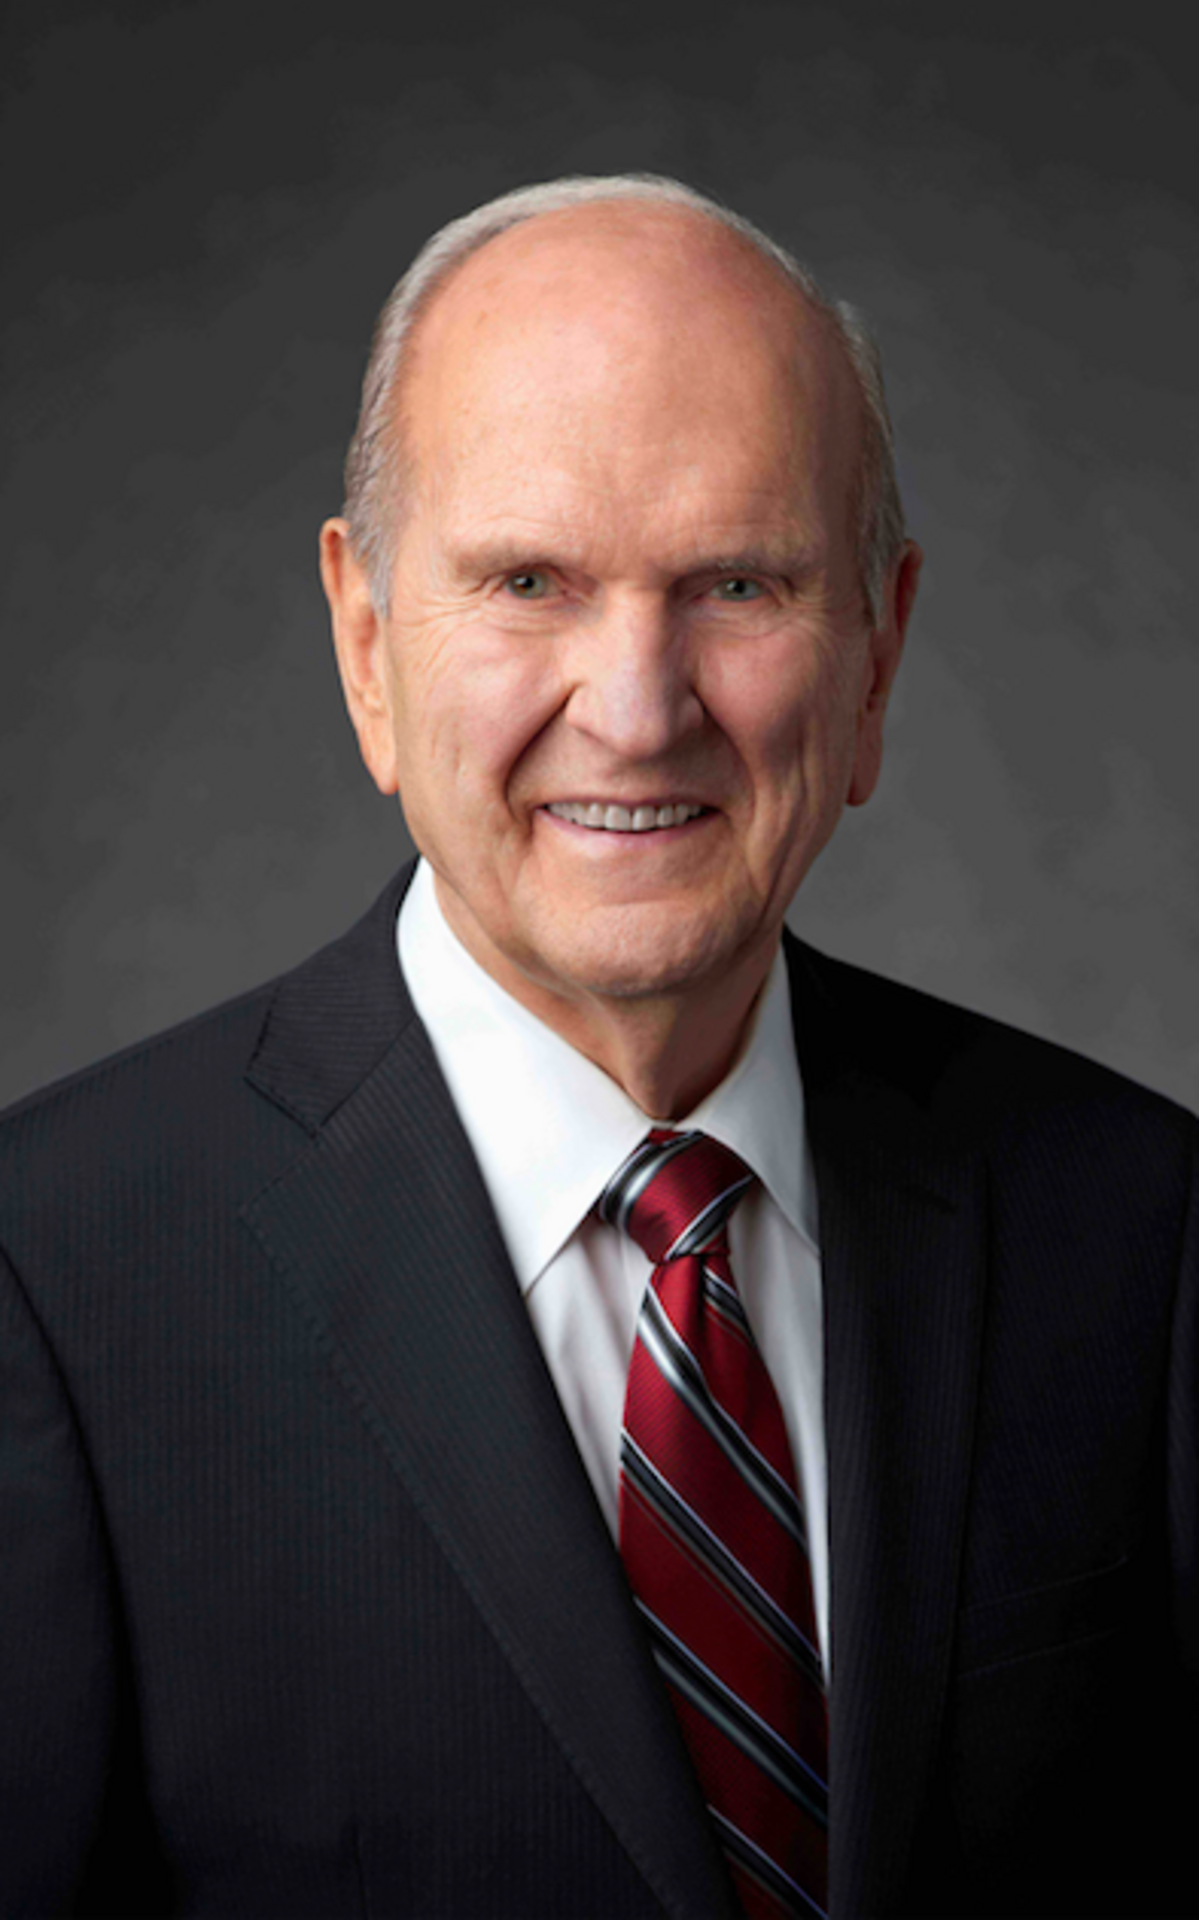 Russell Nelson